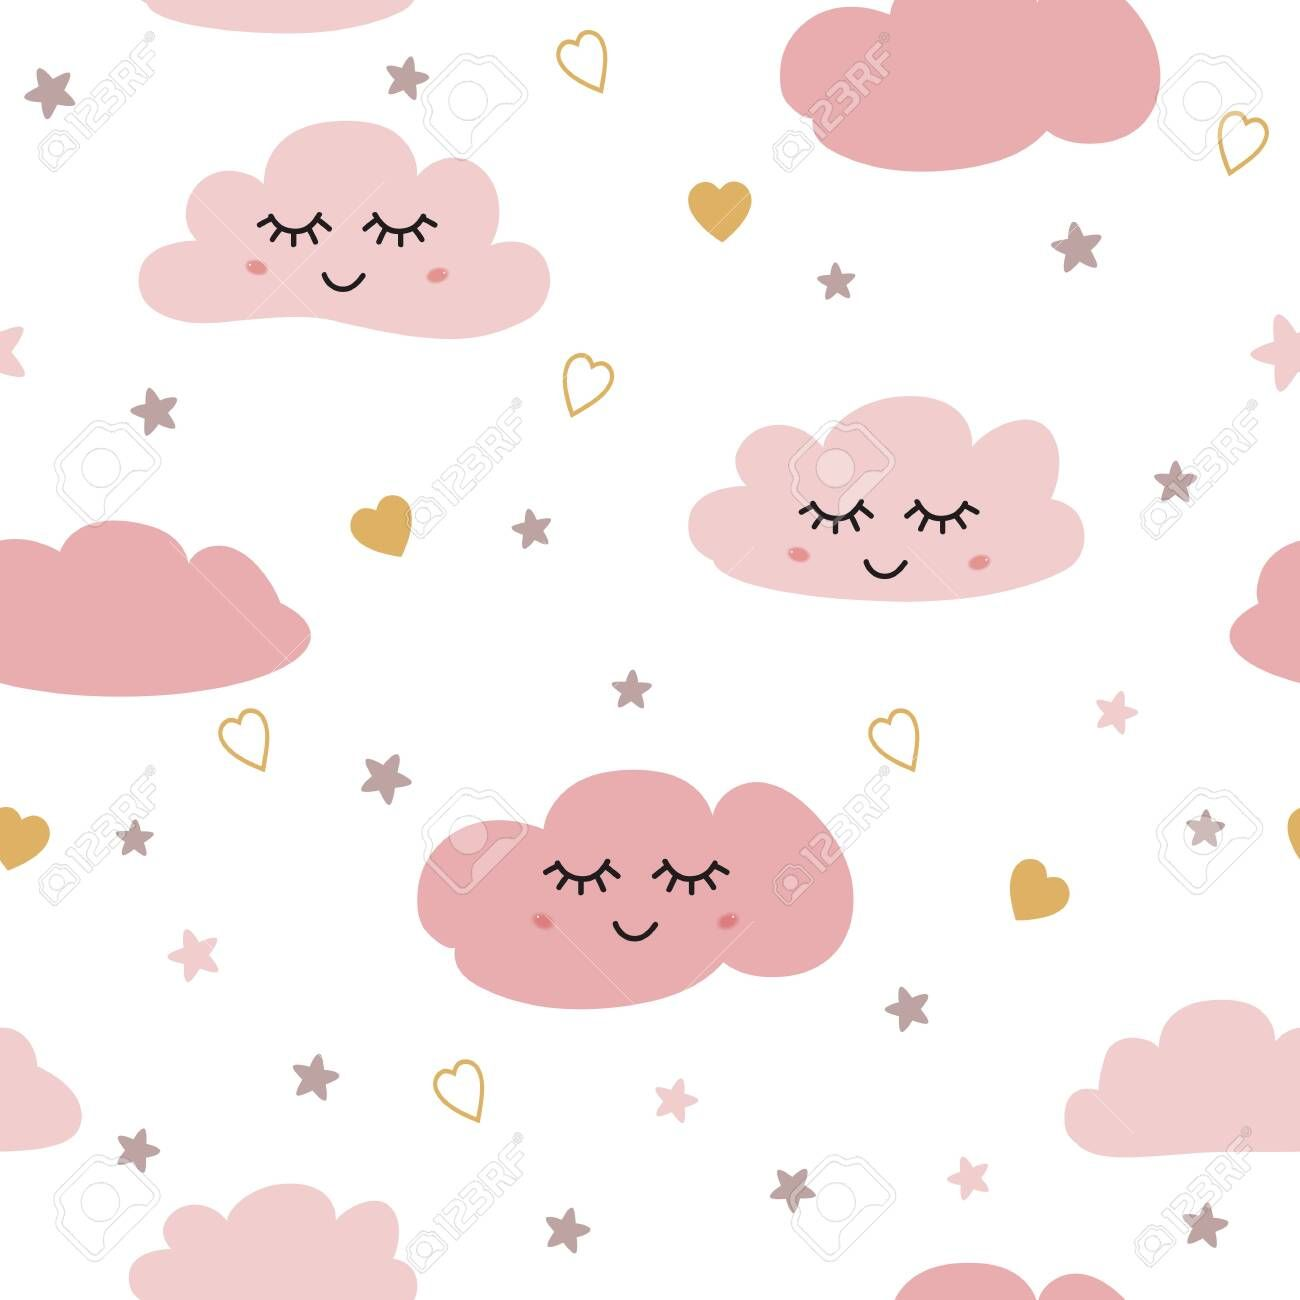 Clouds Pattern Seamless Pattern With Smiling Sleeping Clouds Stars Hearts For Baby Girl Design Cute Baby Shower Pink Background Ilustracoes Vetores Estampas